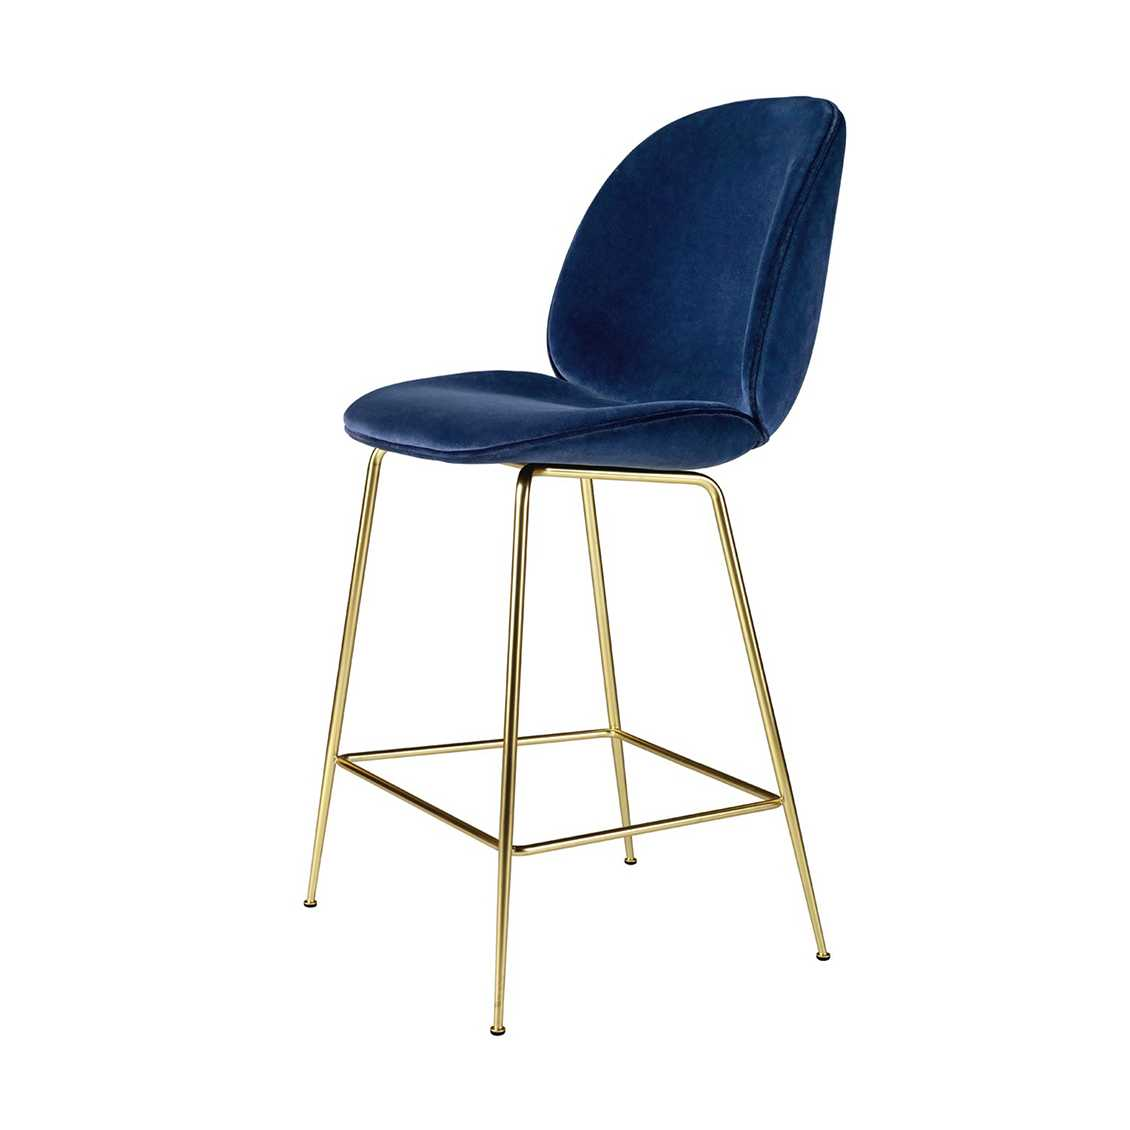 Looking For A Gubi Beetle Barstool Shop Online At The